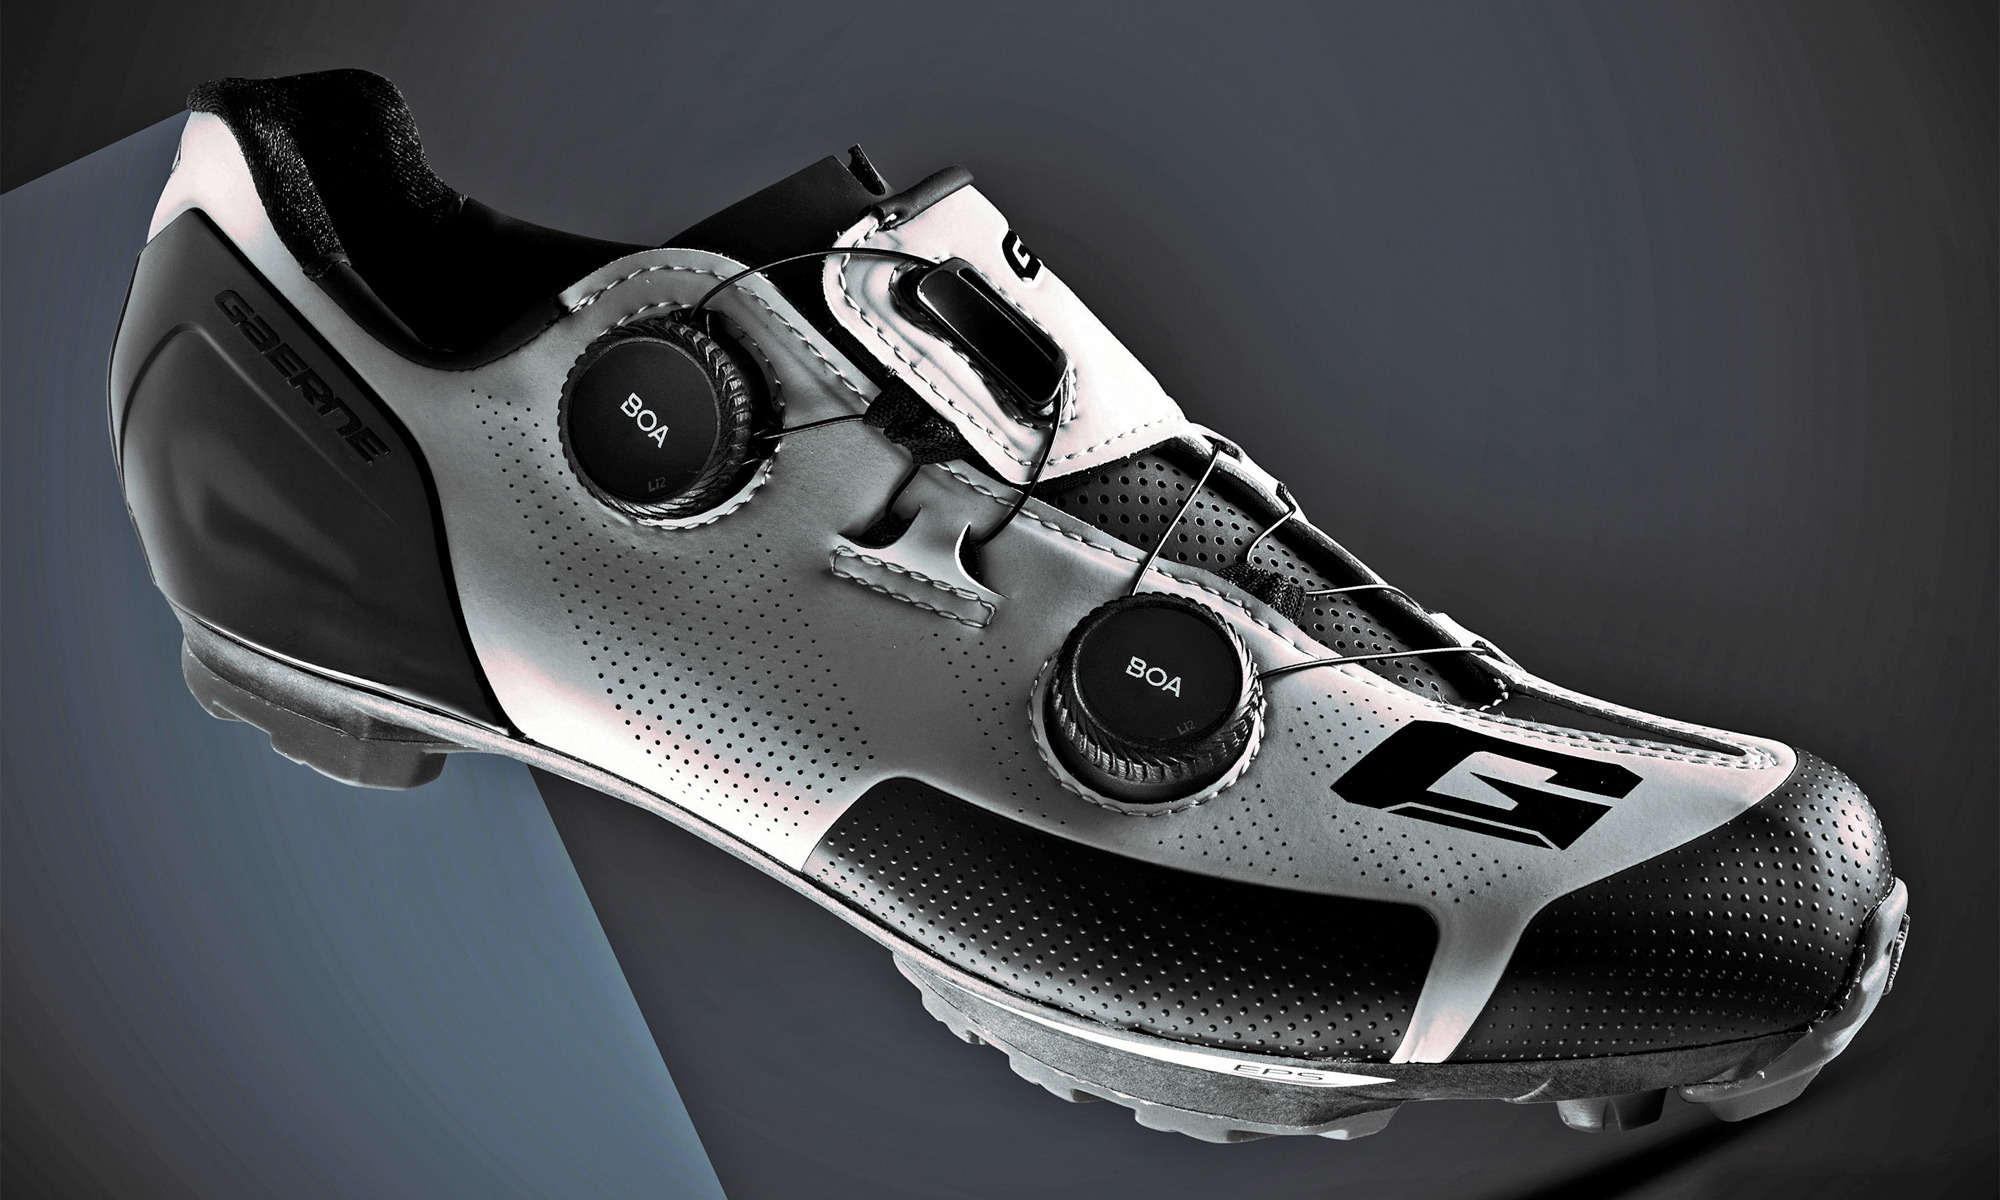 Gaerne G.SNX XC MTB shoes, top-tier race performance carbon cross-country mountain bike shoe, angled